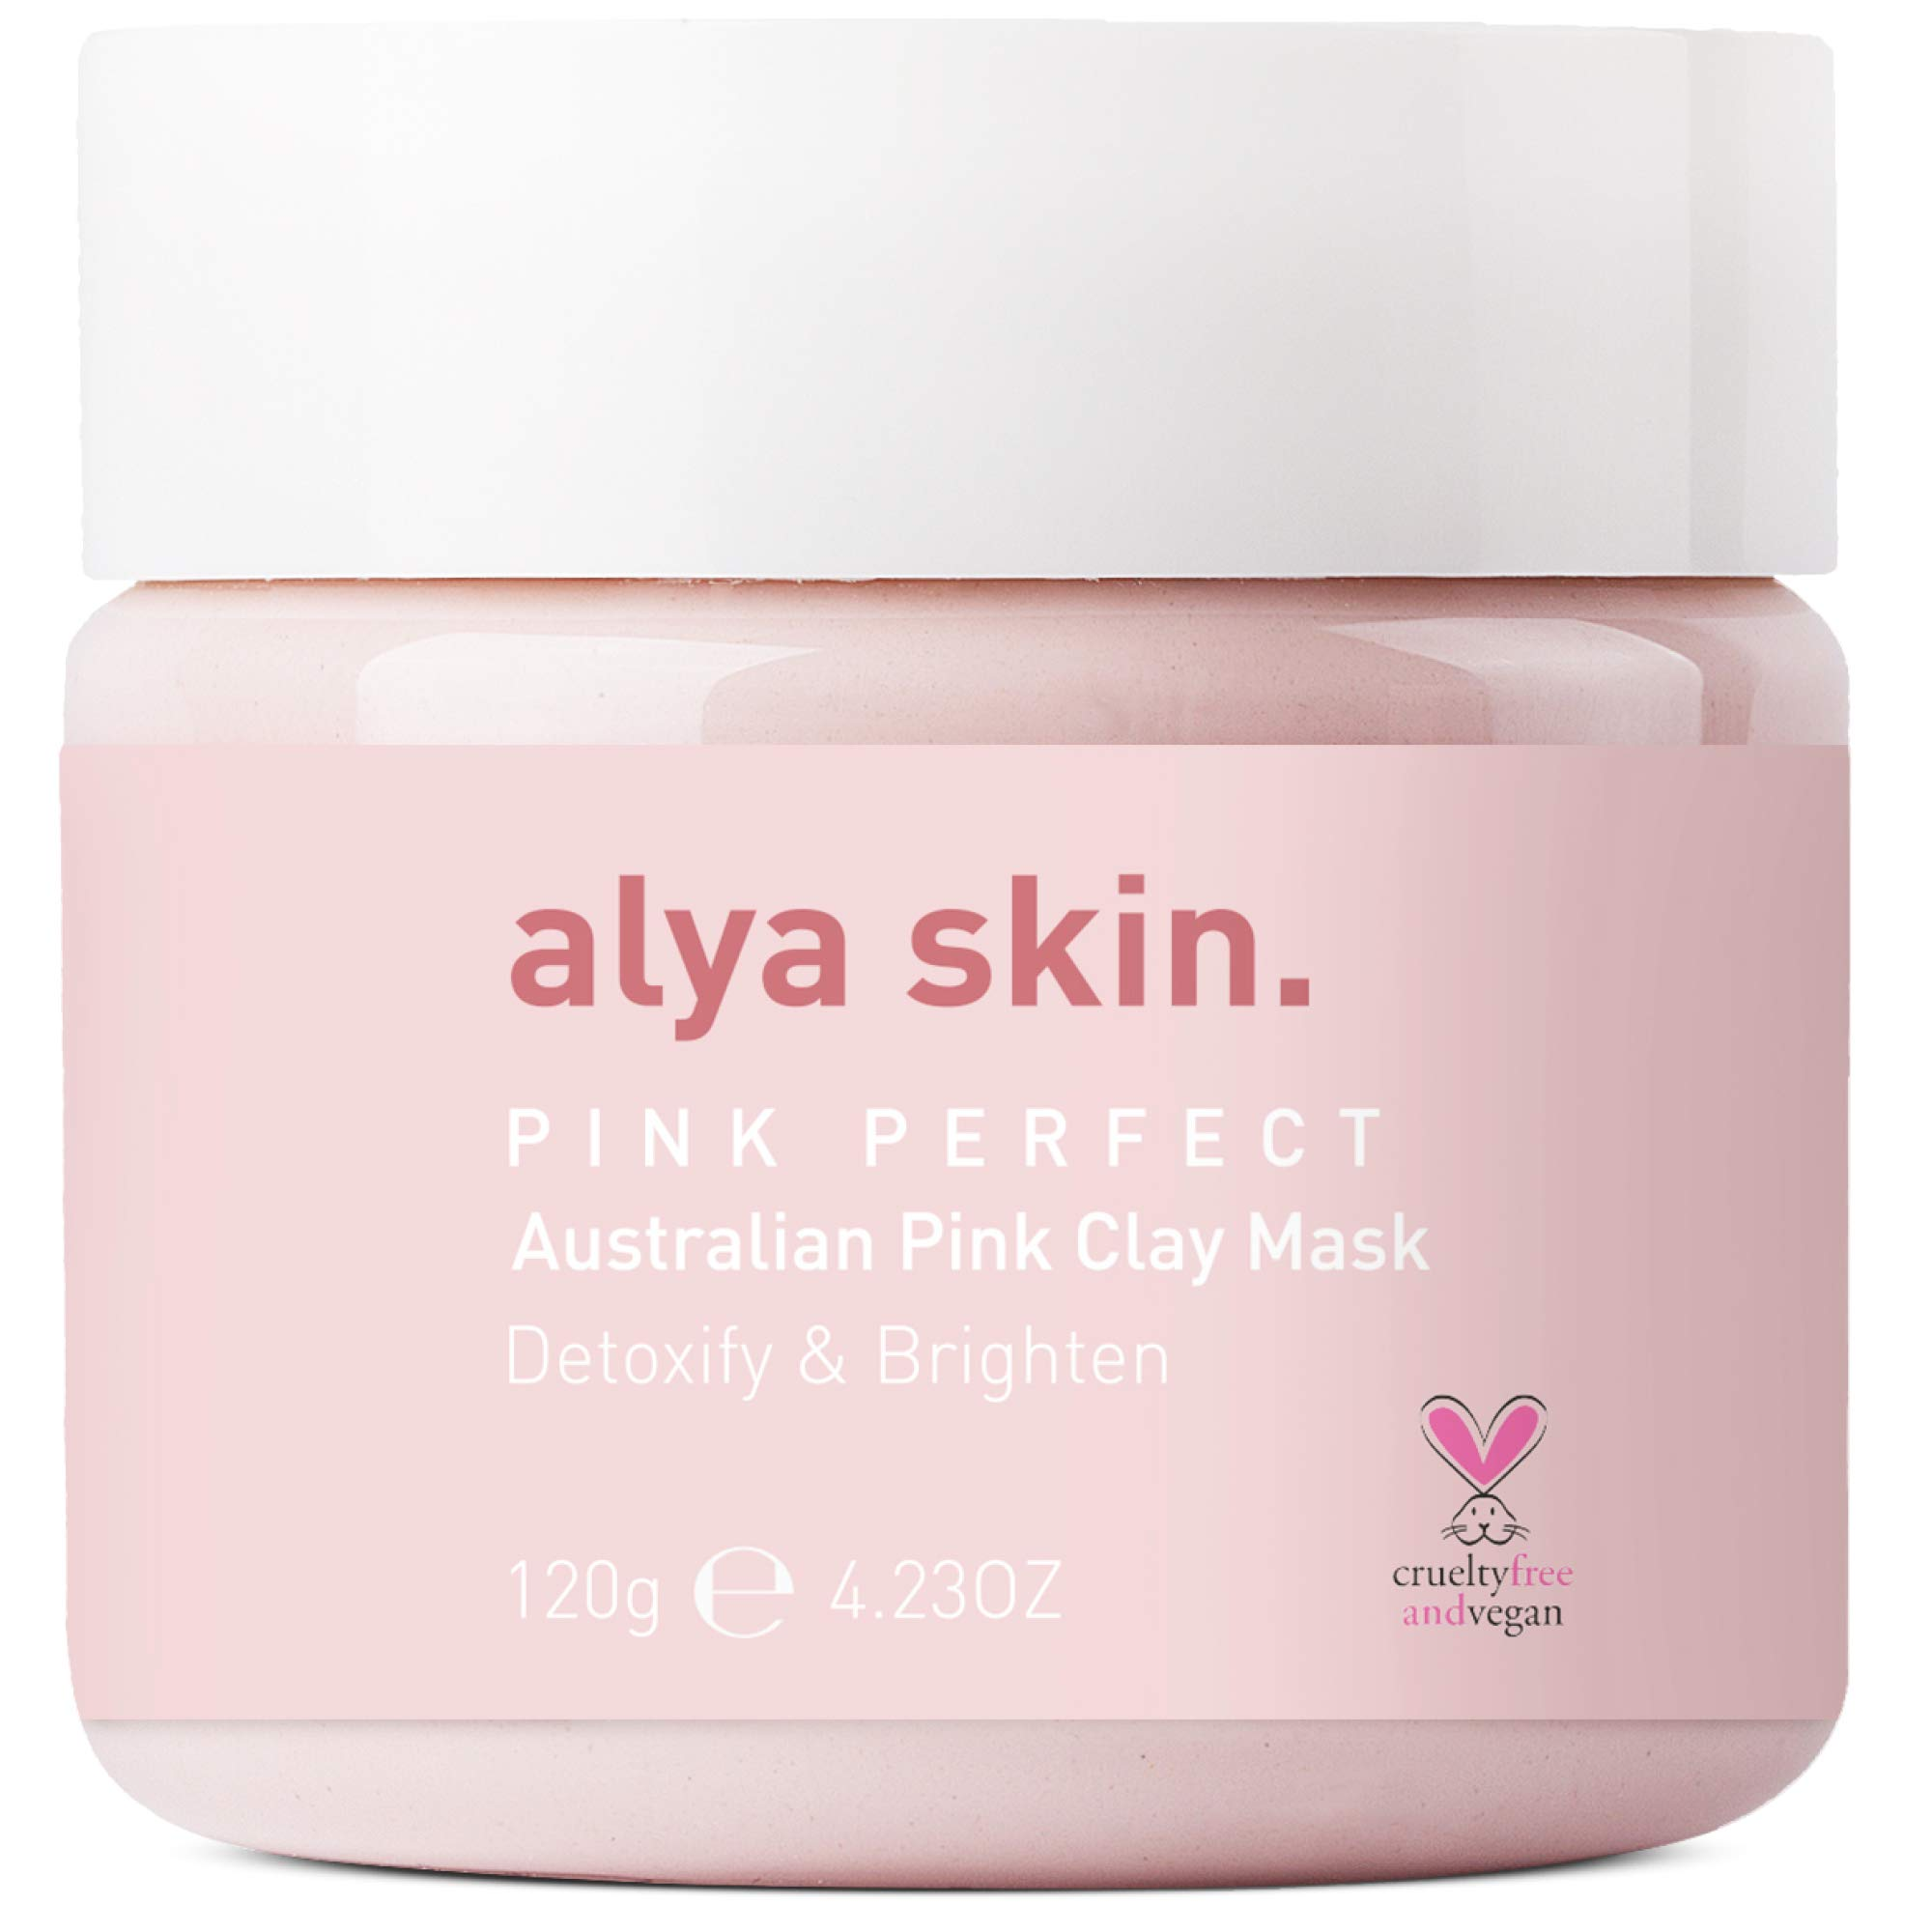 Alya Skin Australian Pink Face Mask - 100% Natural Kaolin Clay with Vitamin E - Deep Pore Skin Cleansing and Detox - Purifying & Brightening Beauty Facial - Cruelty Free & Vegan - 4.32 oz. 120 gm.